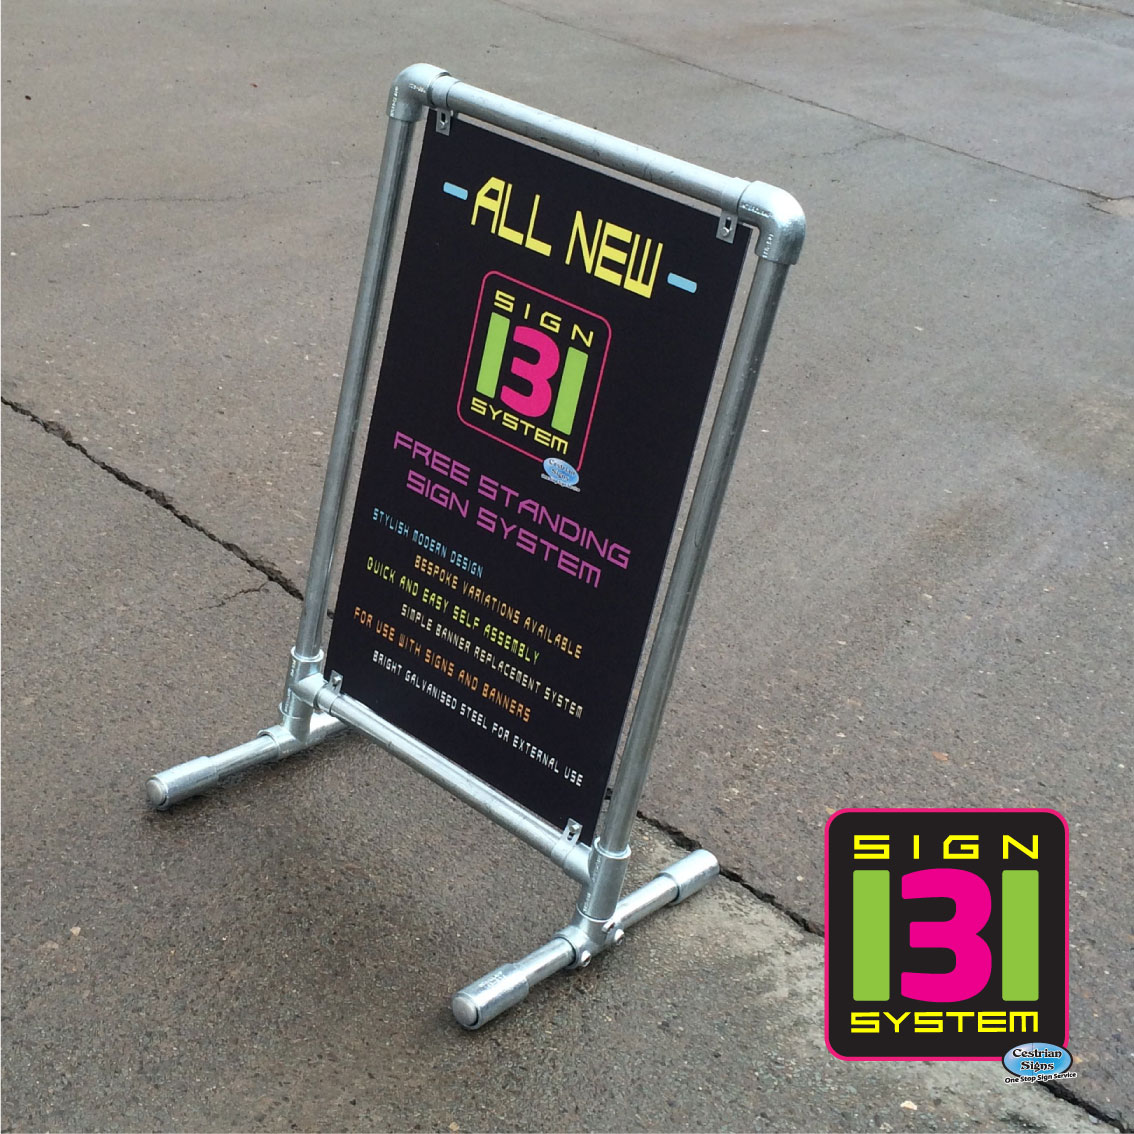 Sign System 131